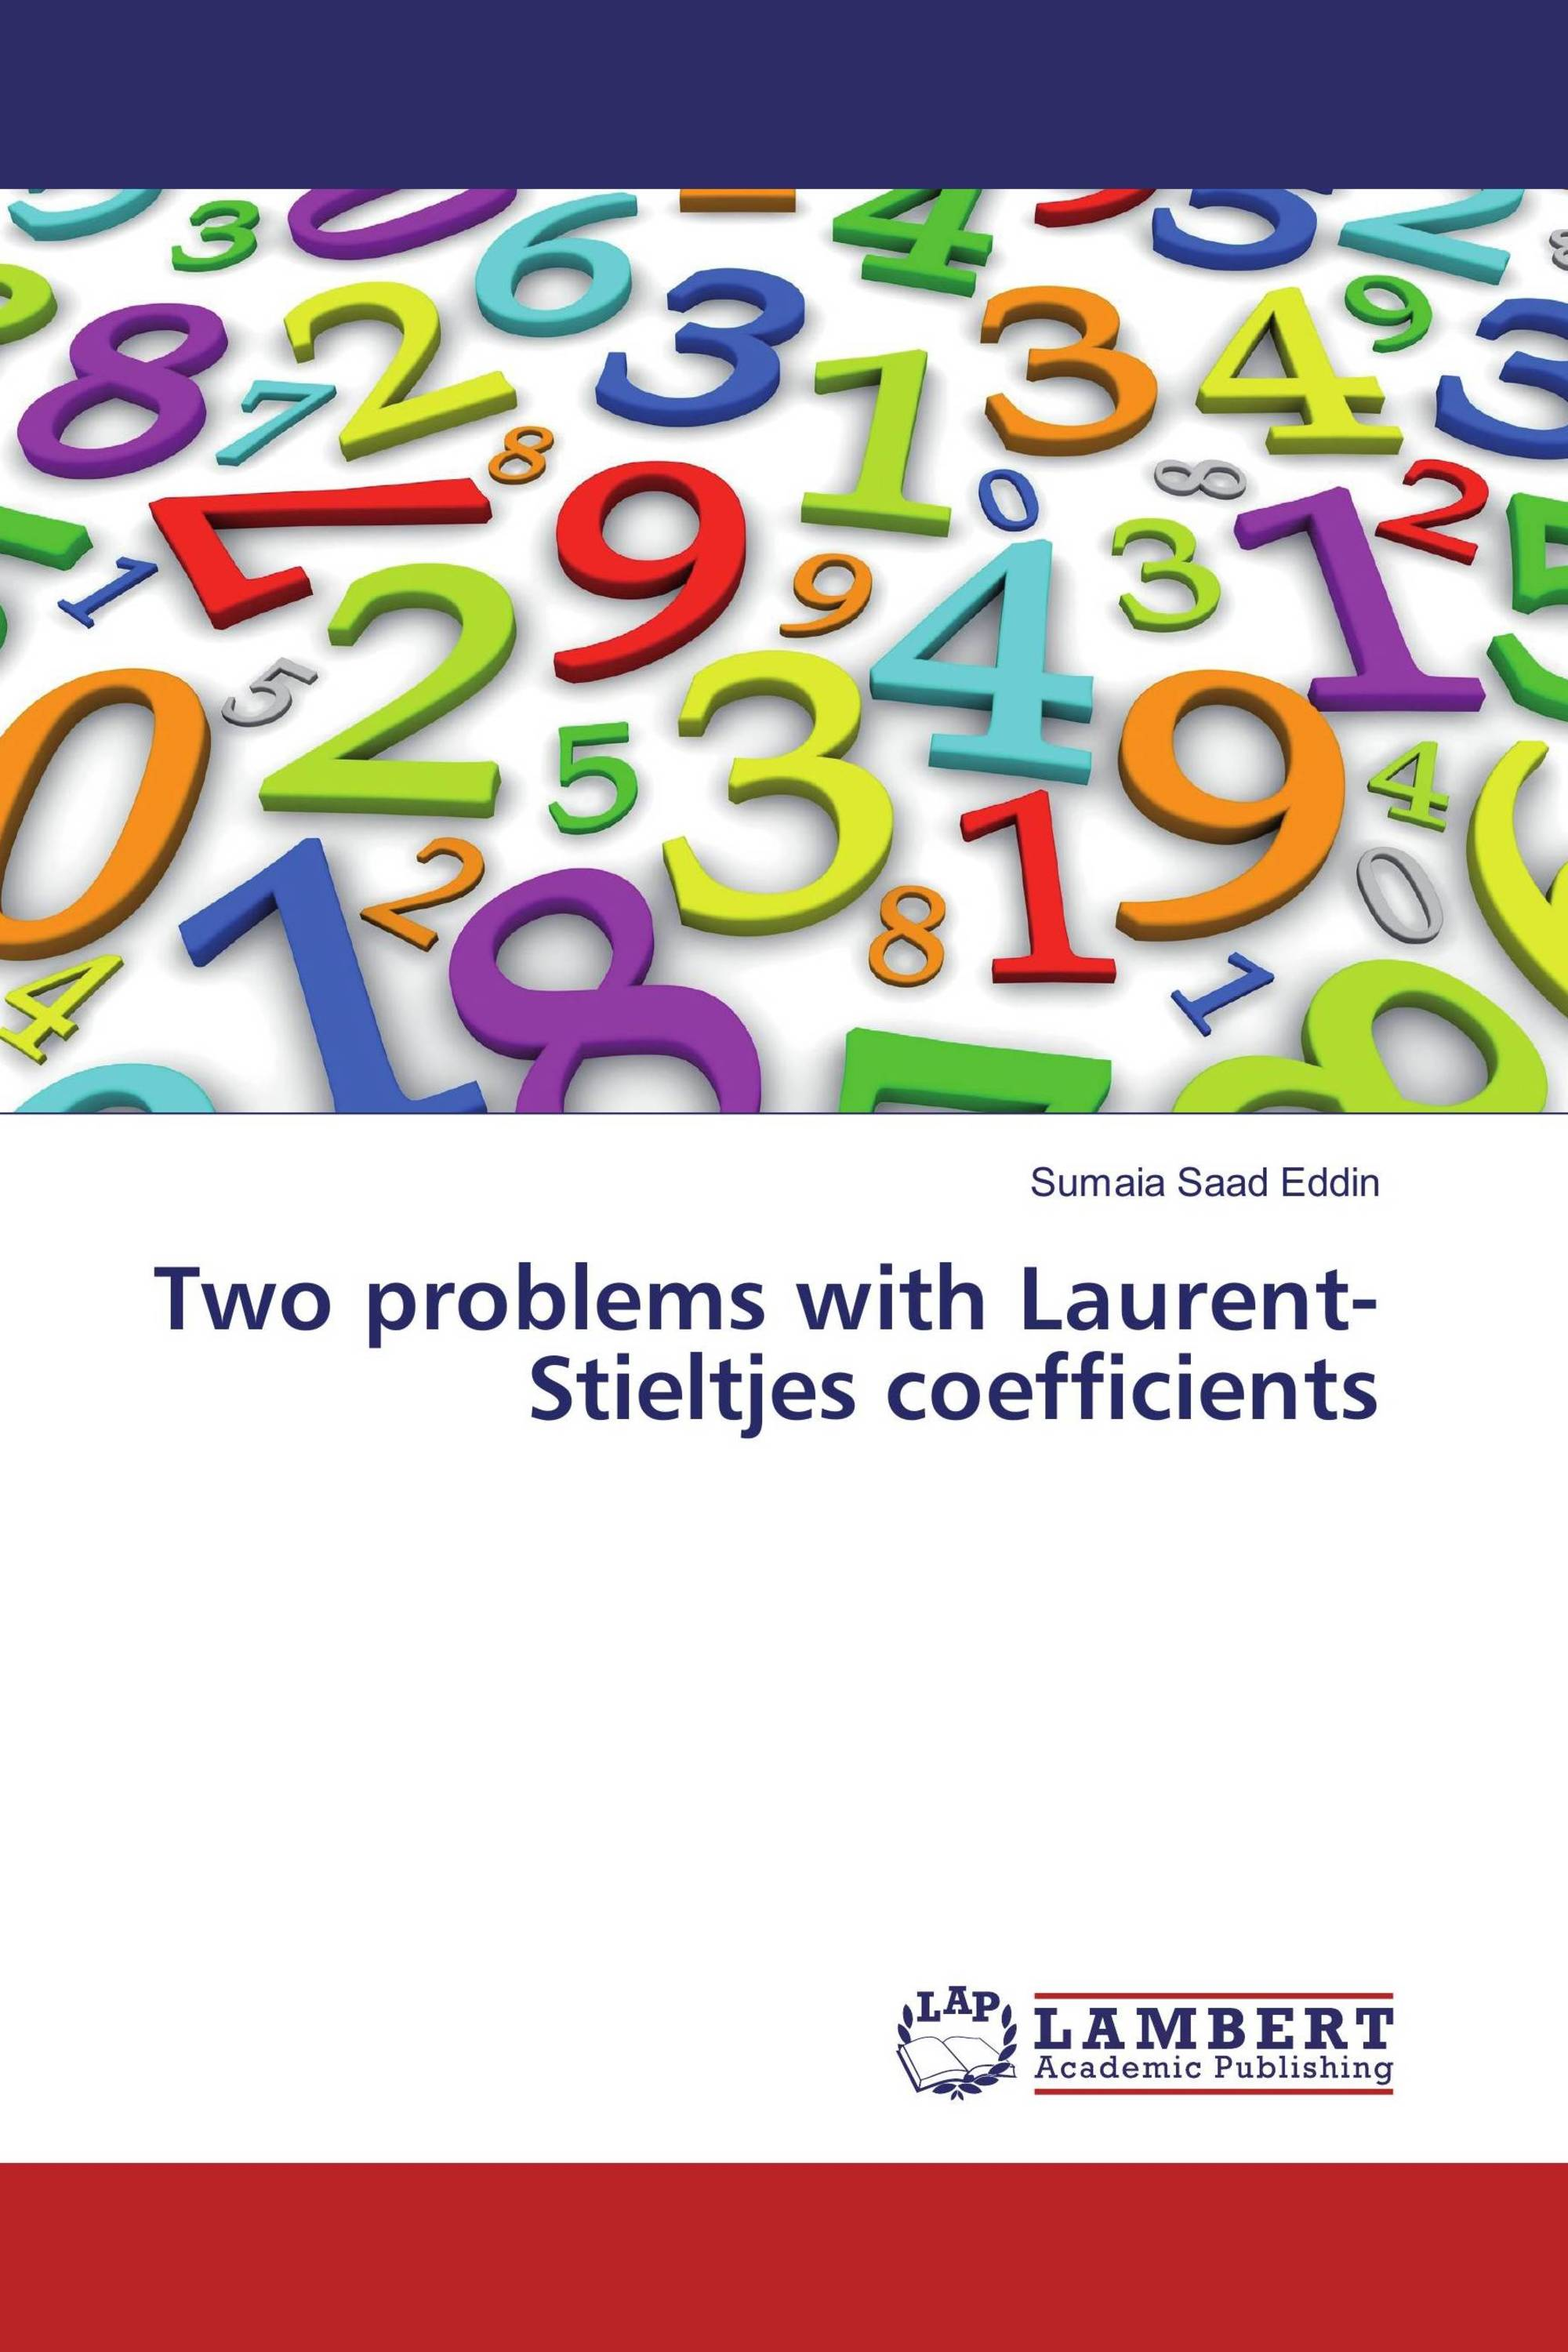 Two problems with Laurent-Stieltjes coefficients